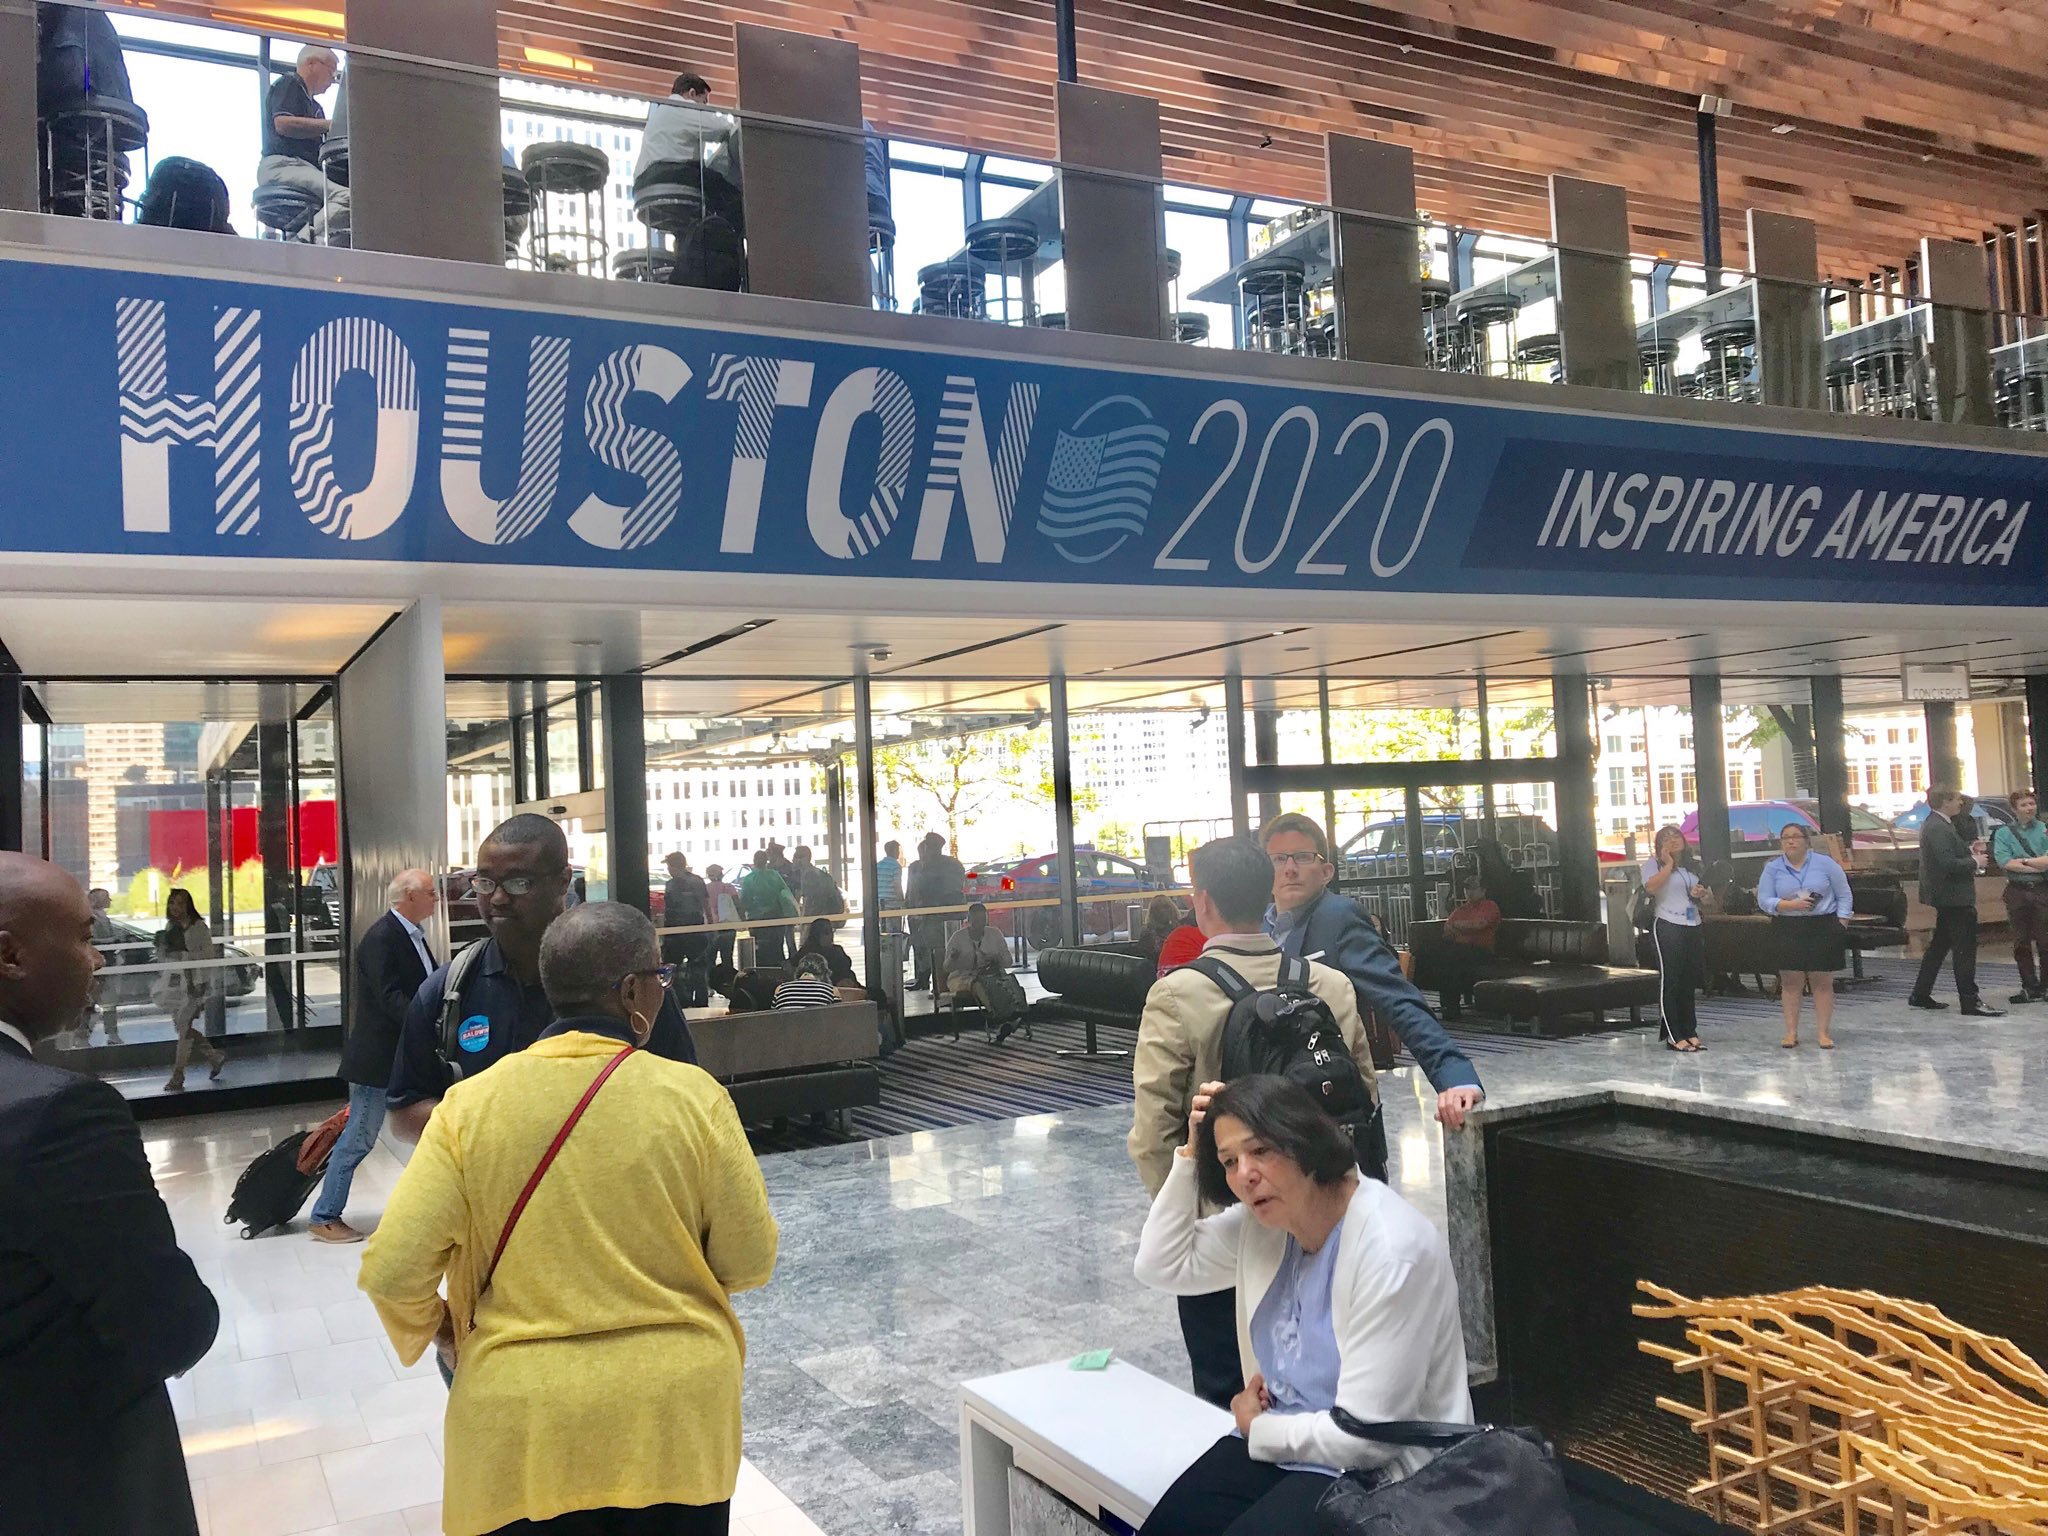 Houston DNC 2020 Striped Text